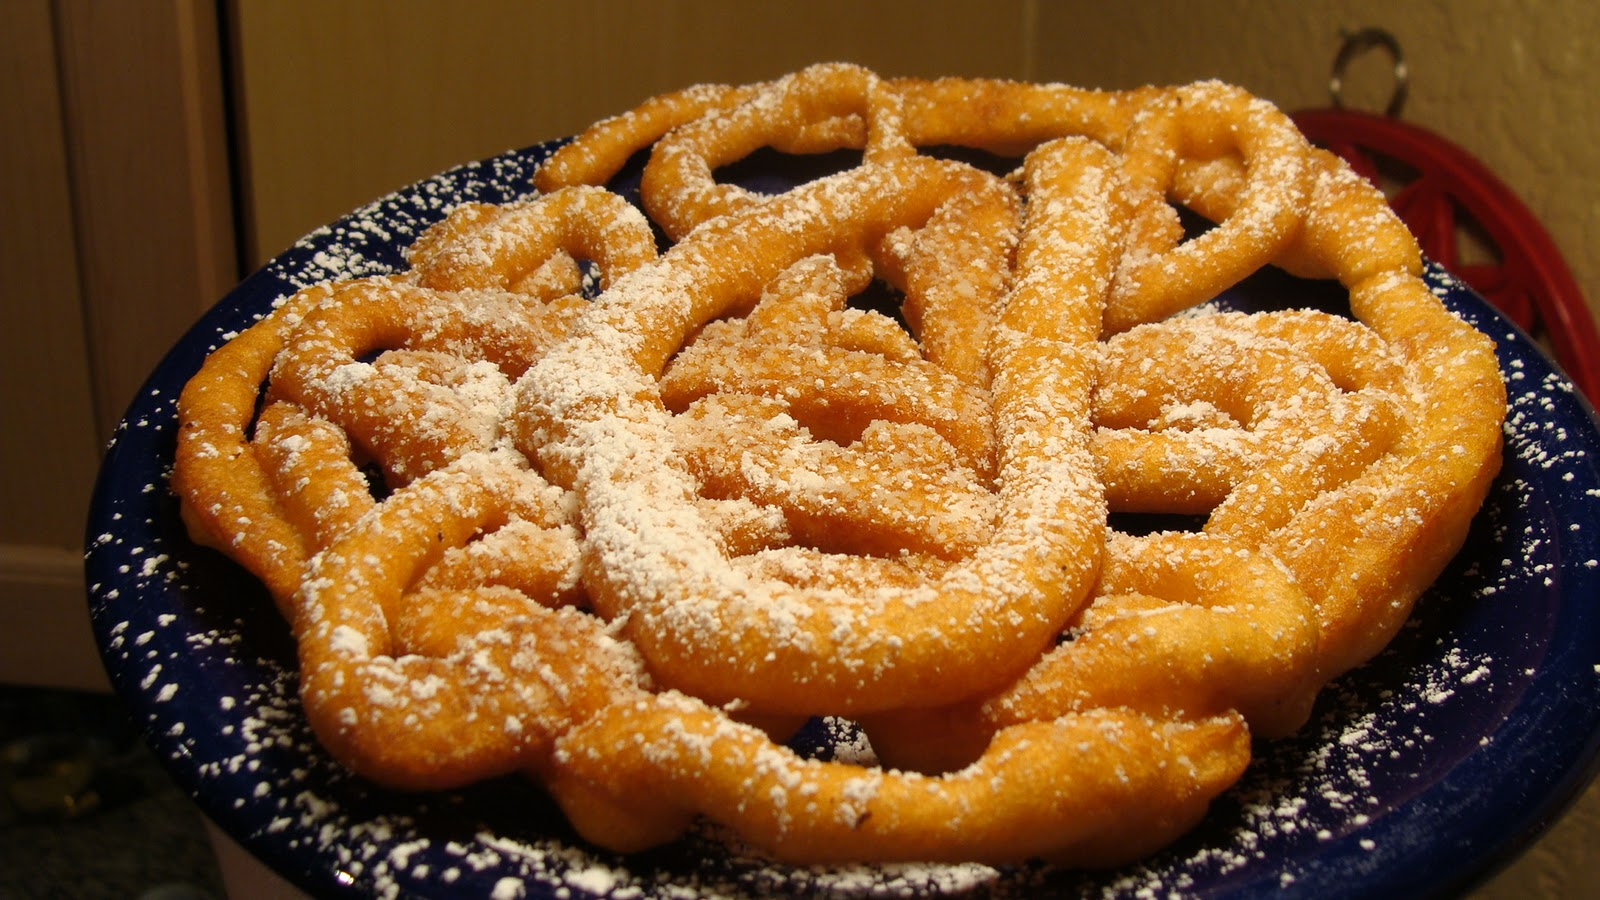 Fermented Grapes: Funnel Cakes